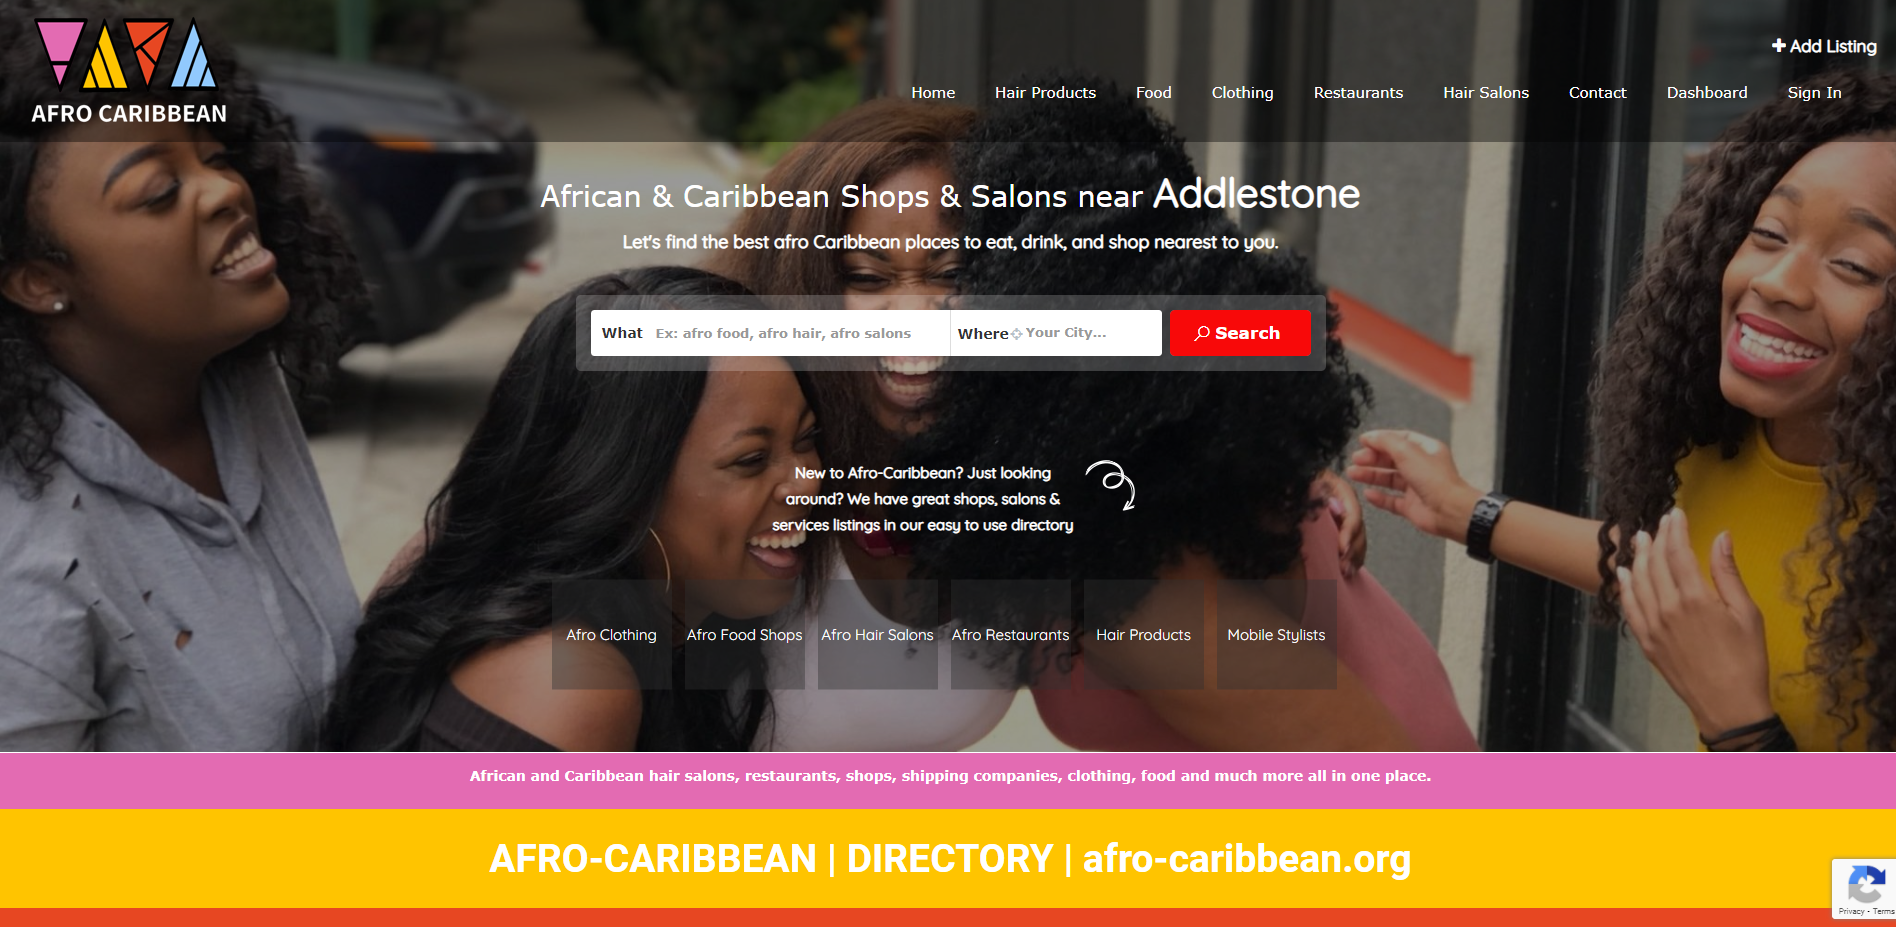 Afro Caribbean Business Directory By T900 Website Design in Surrey